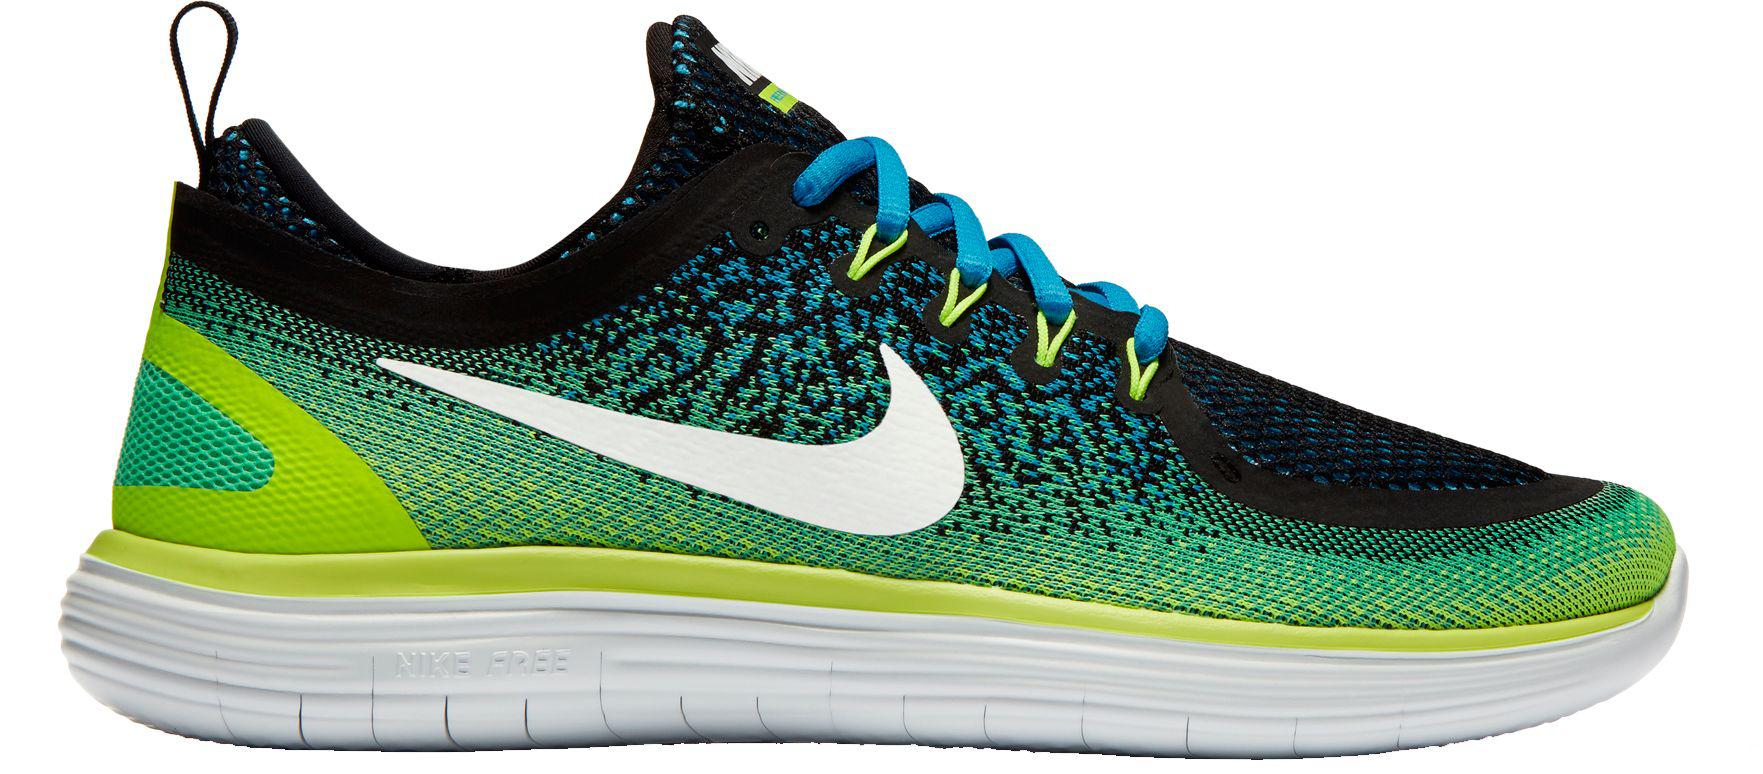 new style f09ae 6e485 Nike - Green Free Rn Distance 2 Running Shoes for Men - Lyst